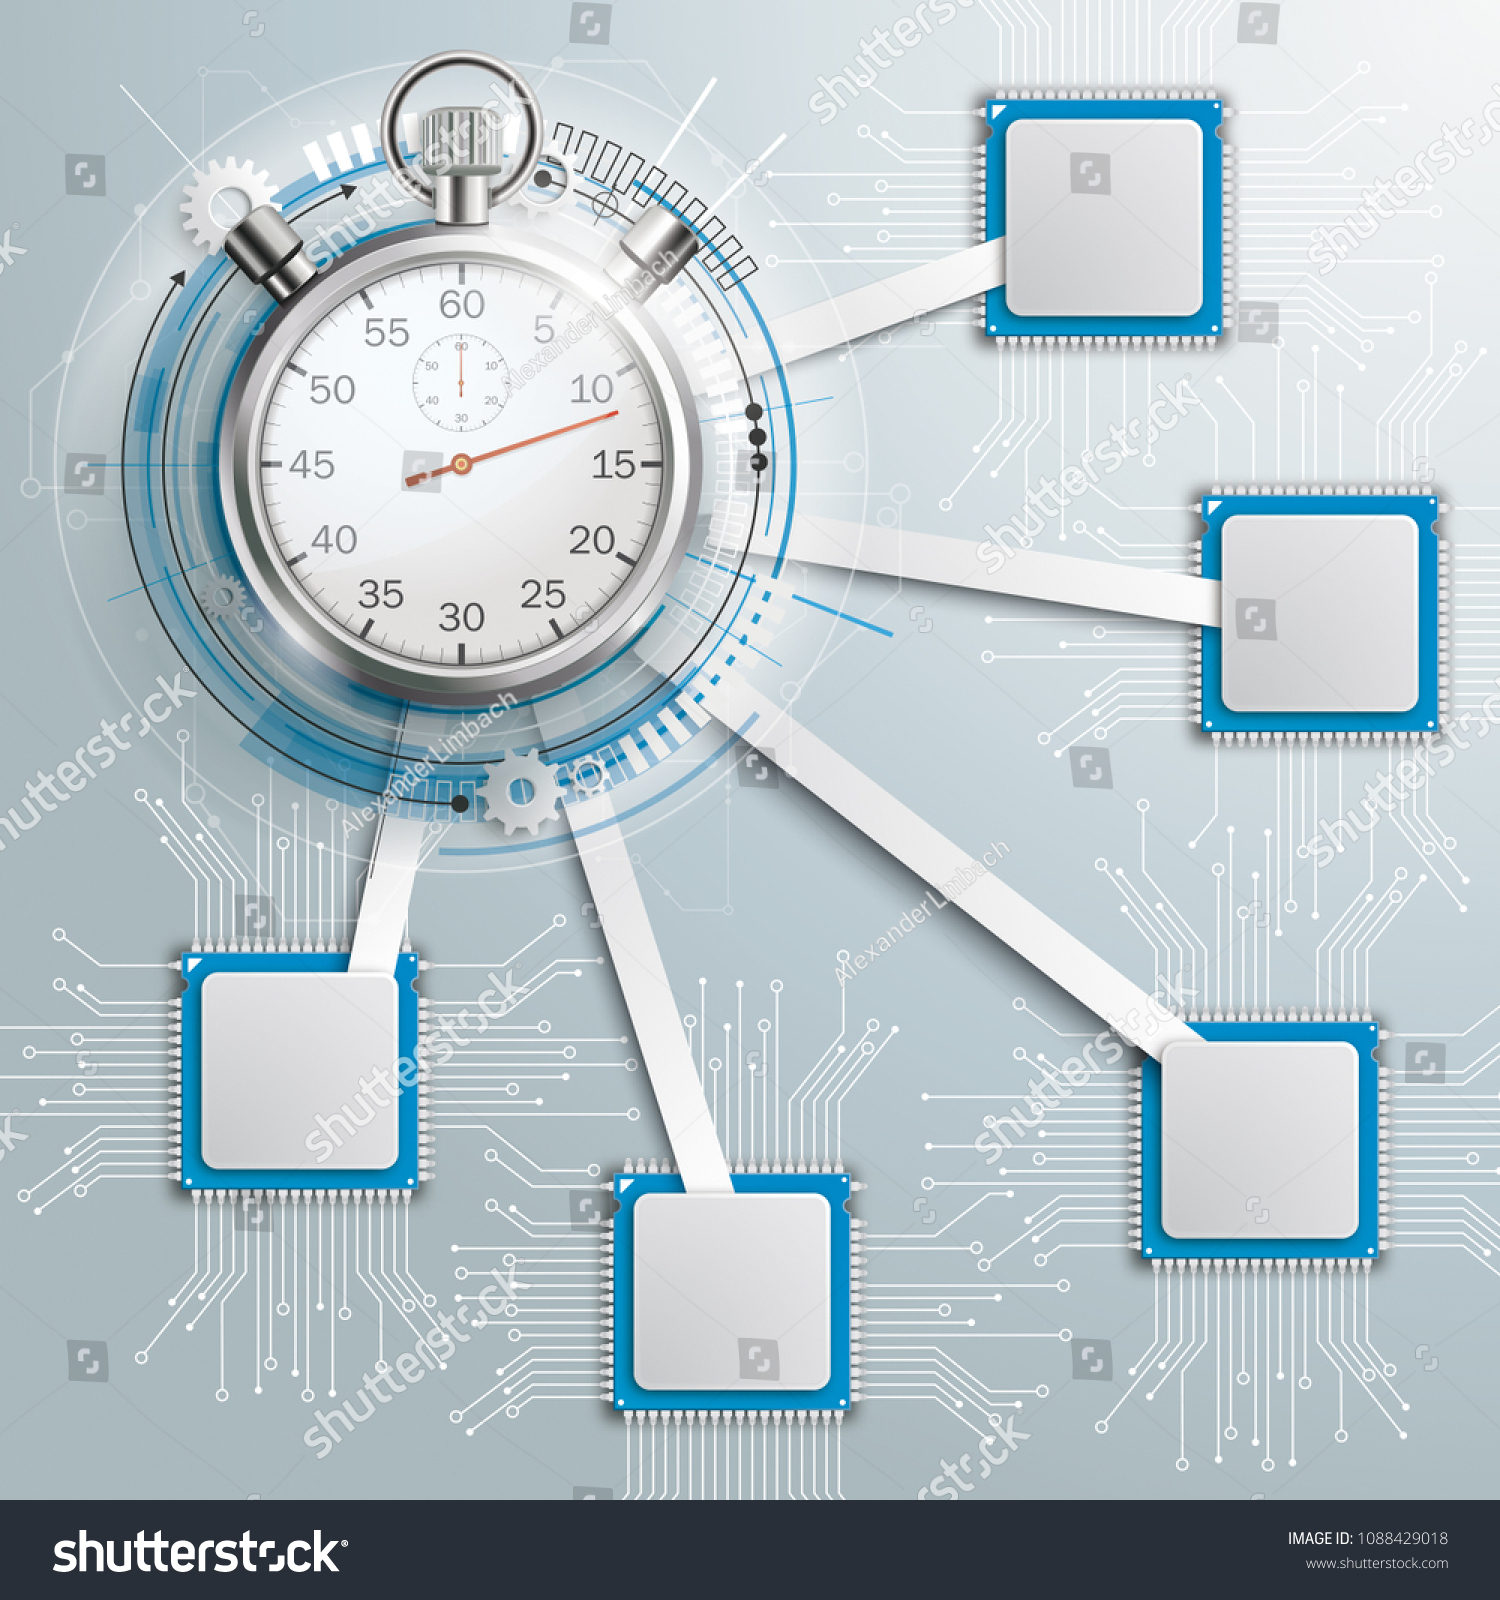 Infographic Design Microchips Stopwatch On Gray Stock Vector Electronic Circuit With And The Background Eps 10 File